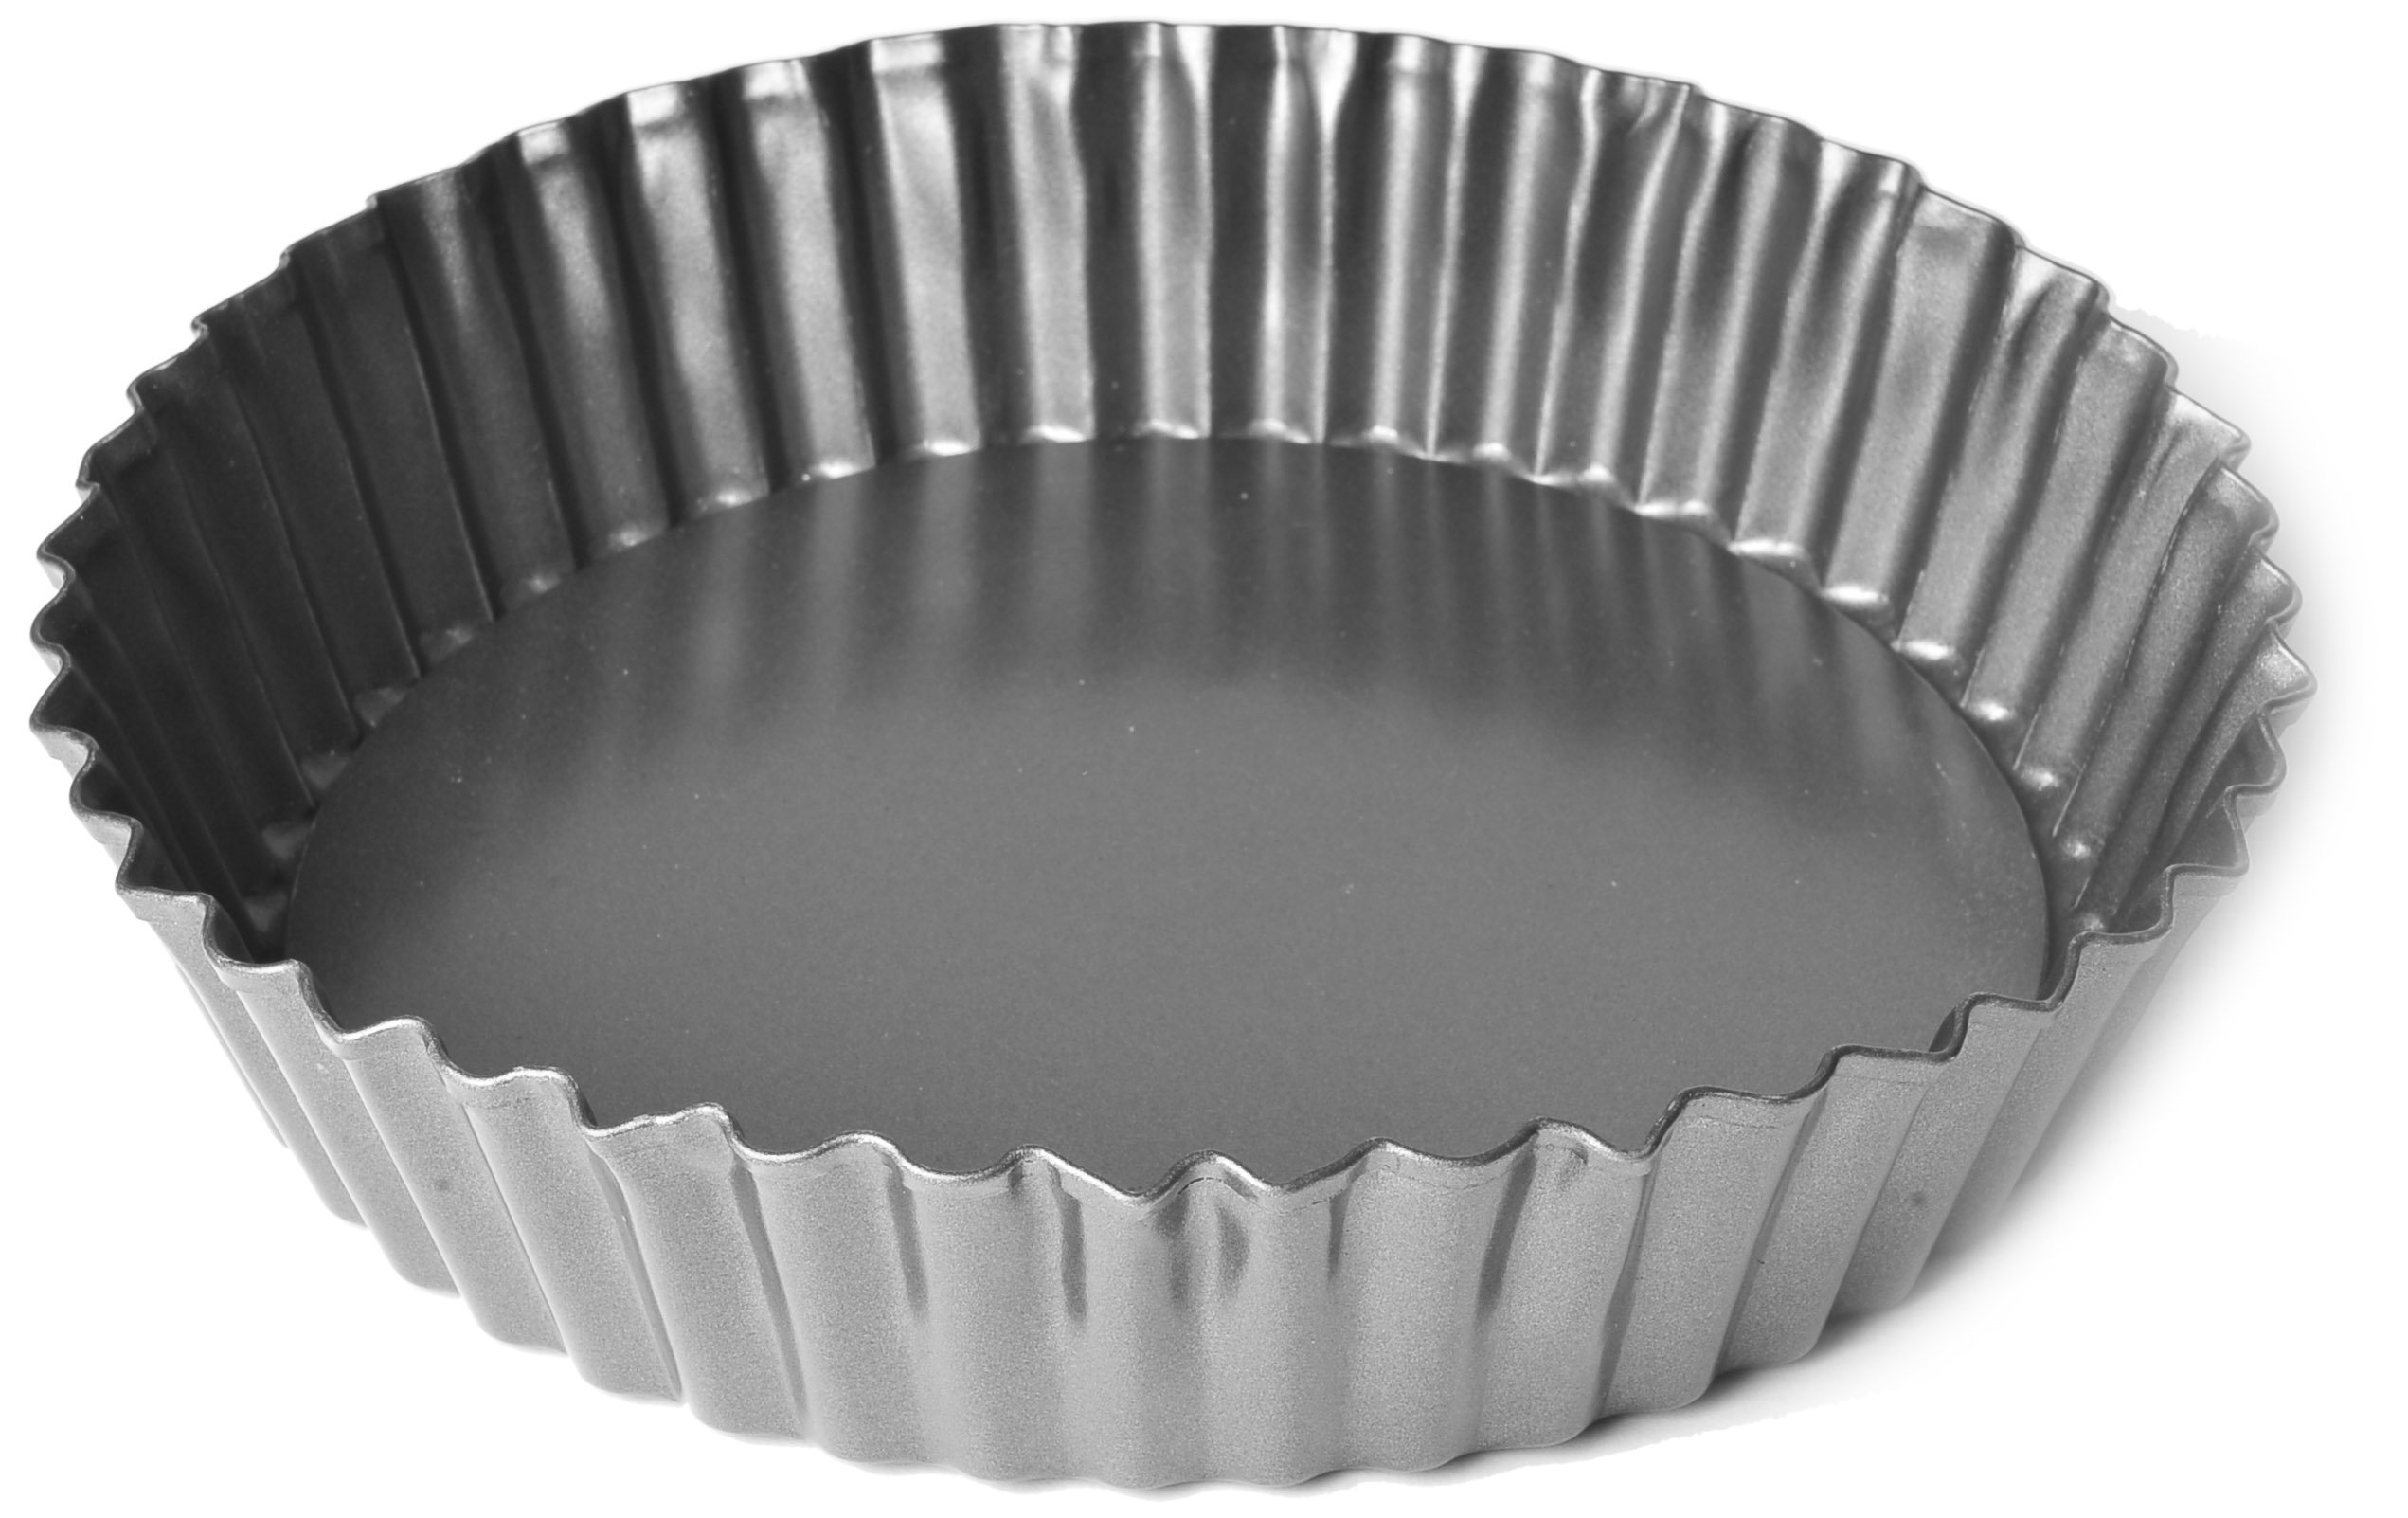 Chloe's Kitchen 203-160 10-Inch Deep Quiche Removable Bottom by MDC Housewares Inc.